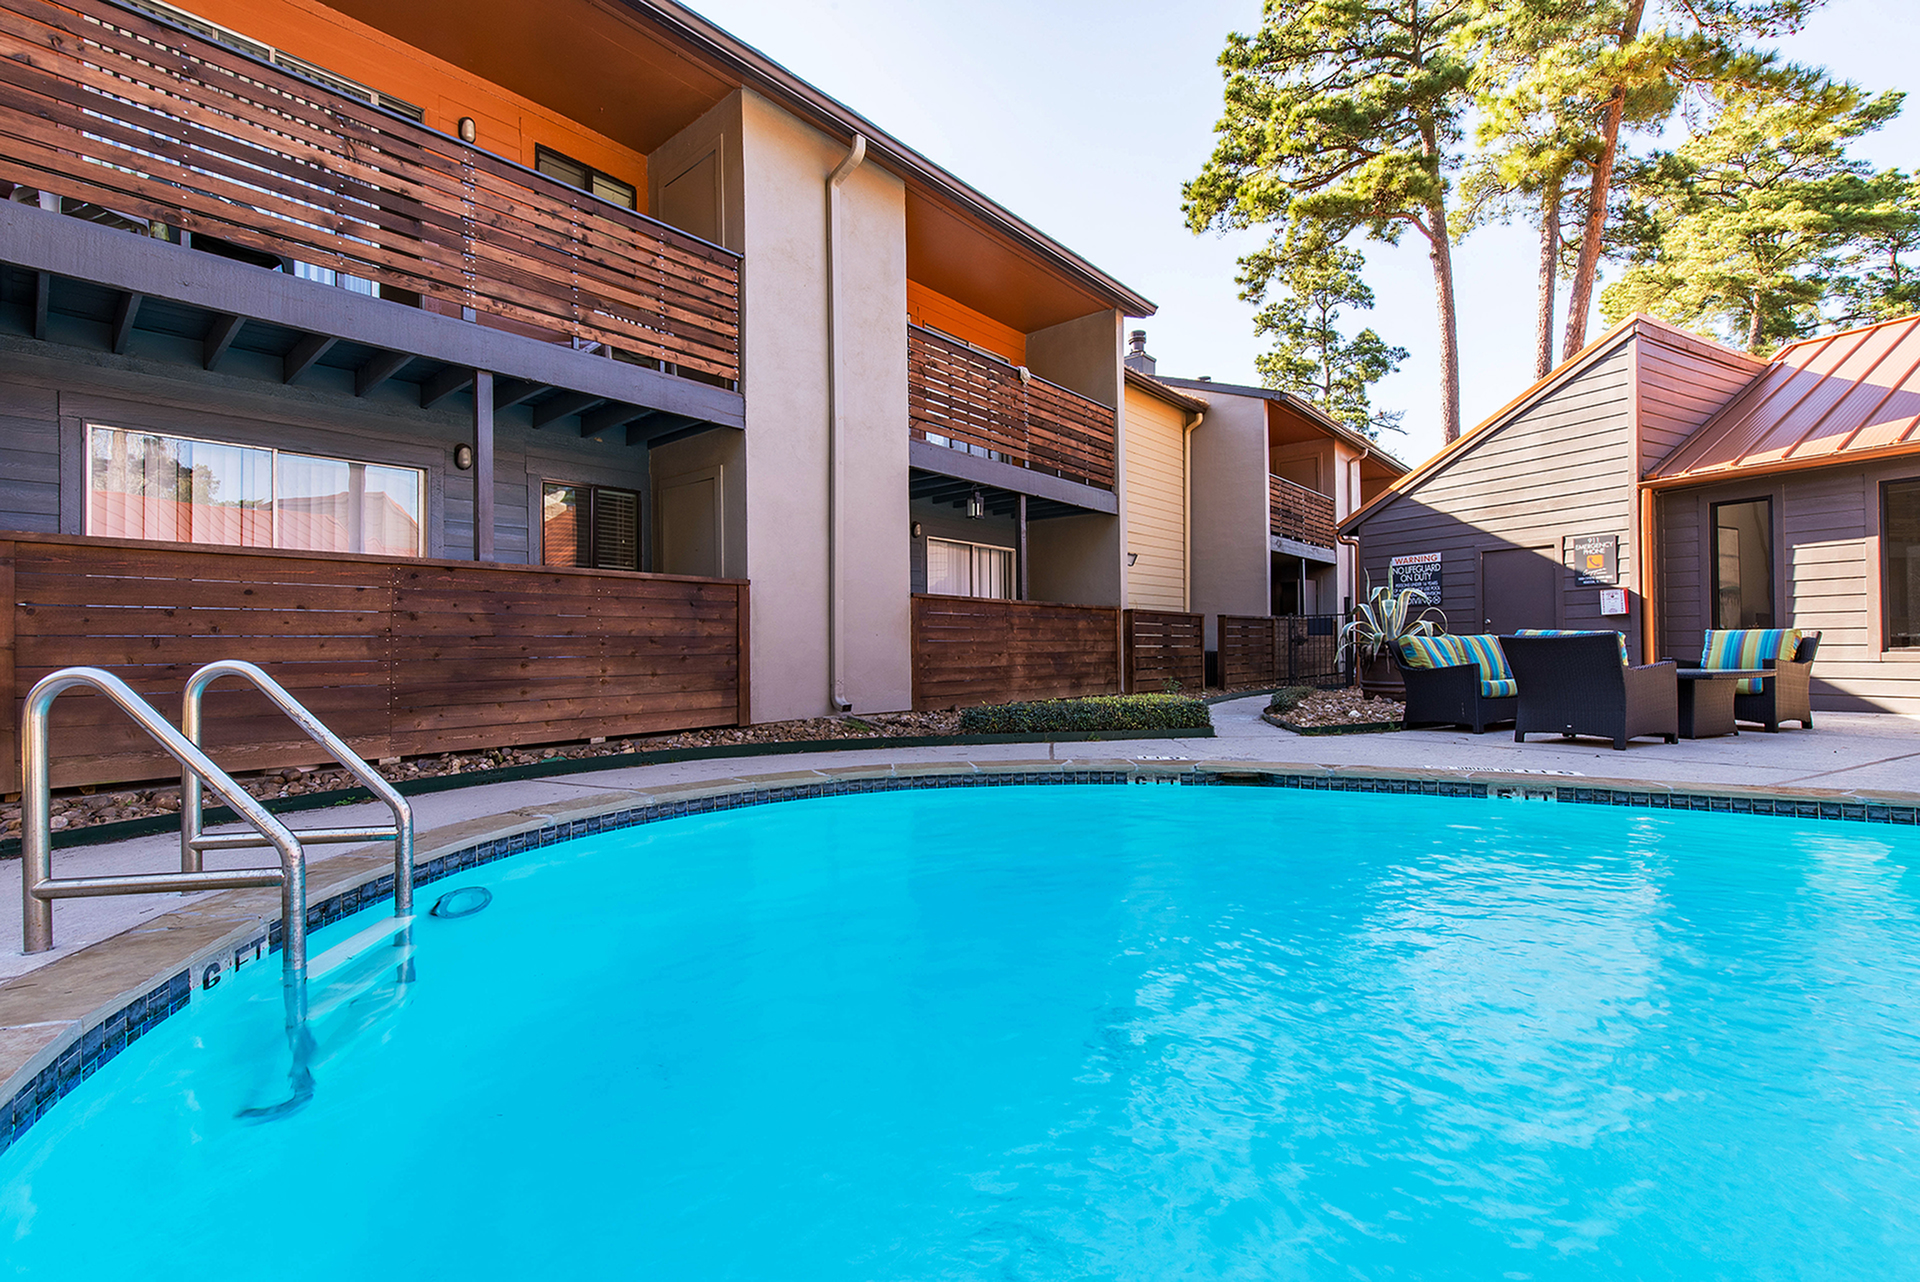 Apartments Houston-Copper Lodge Swimming Pool with Seating Area Nearby and Clubhouse